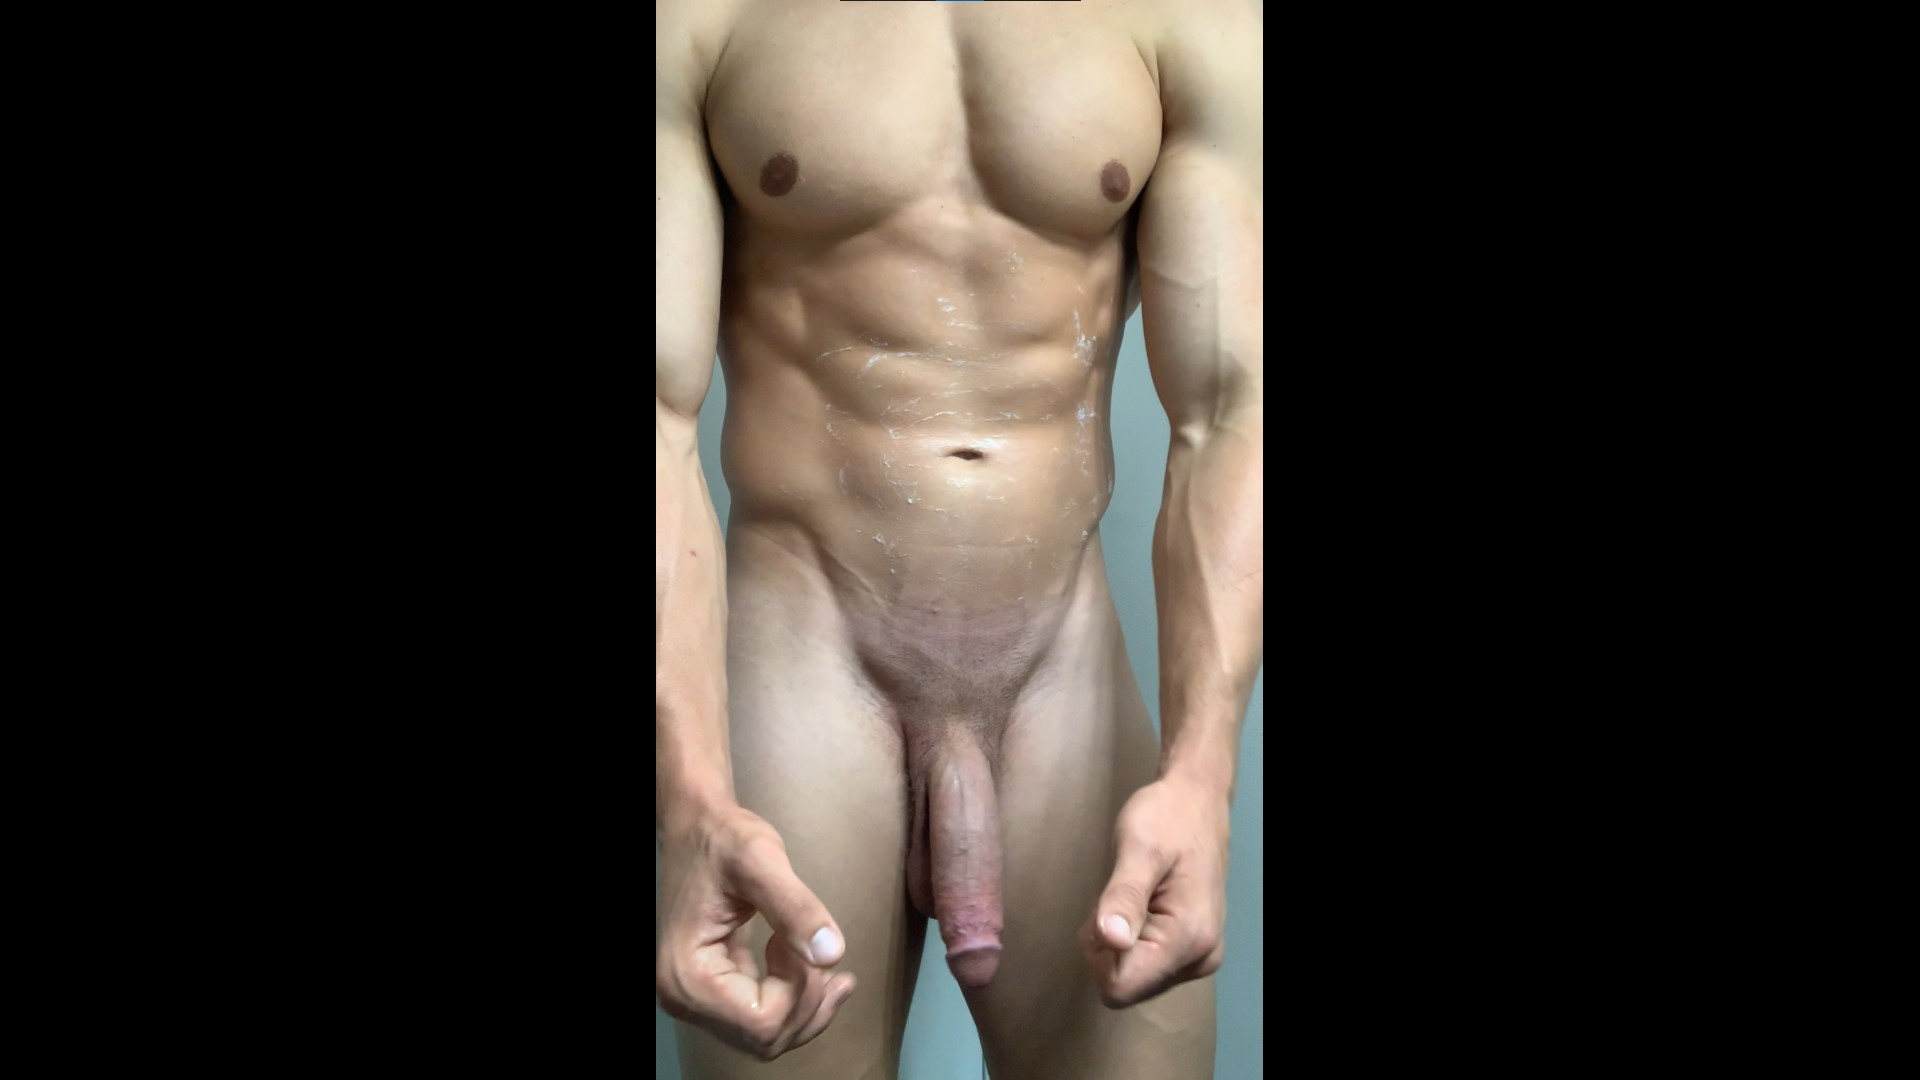 Jerking off after gym and rubbing my load over my abs - Carsten Gauslow